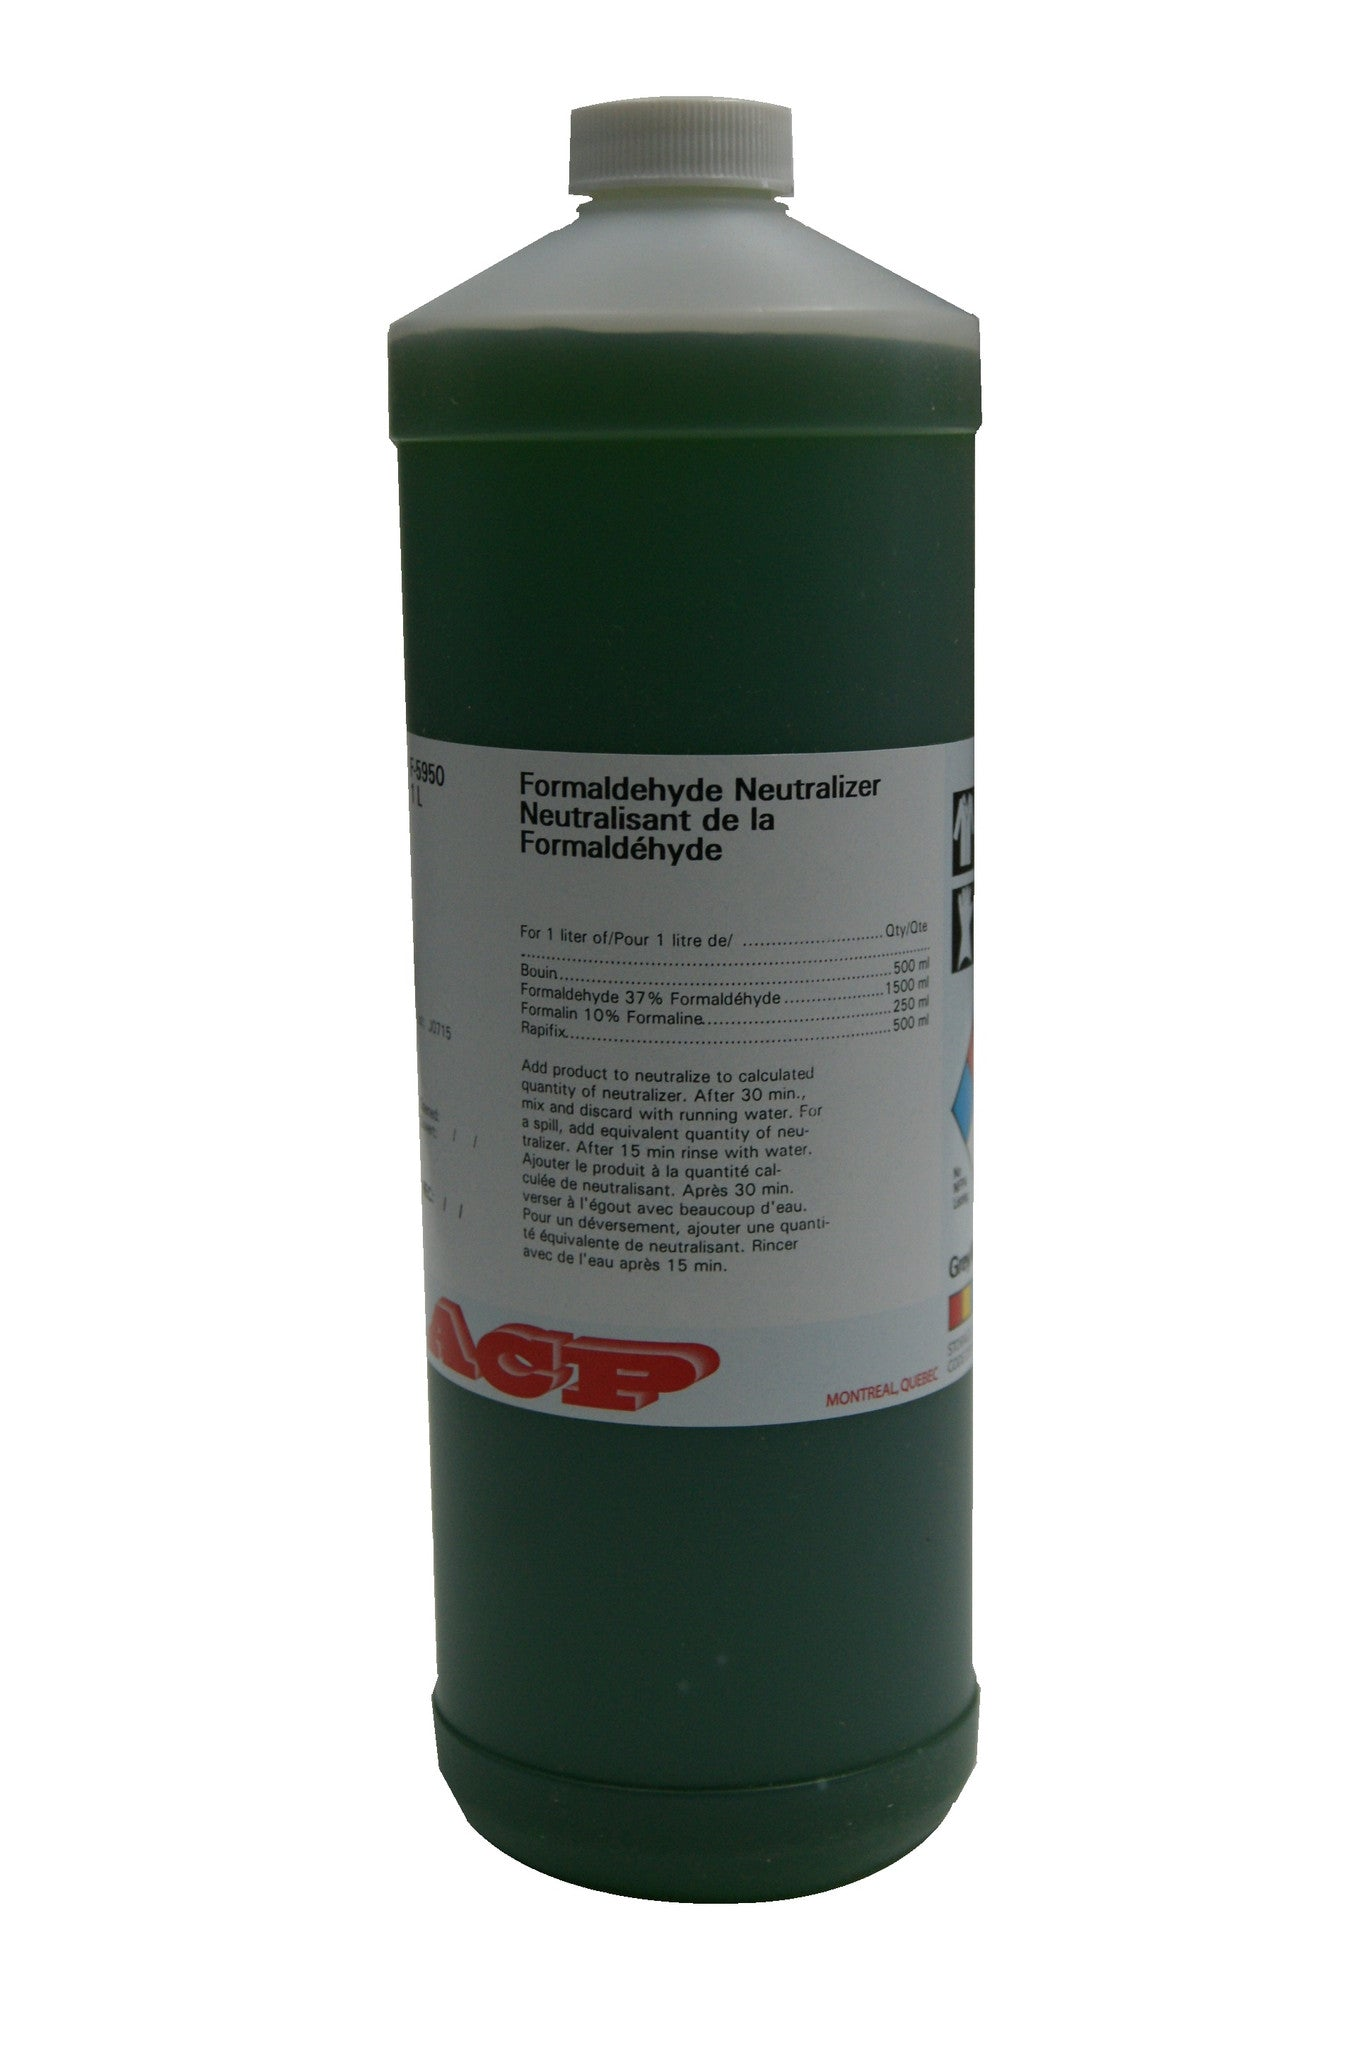 Formaldehyde Neutralizer